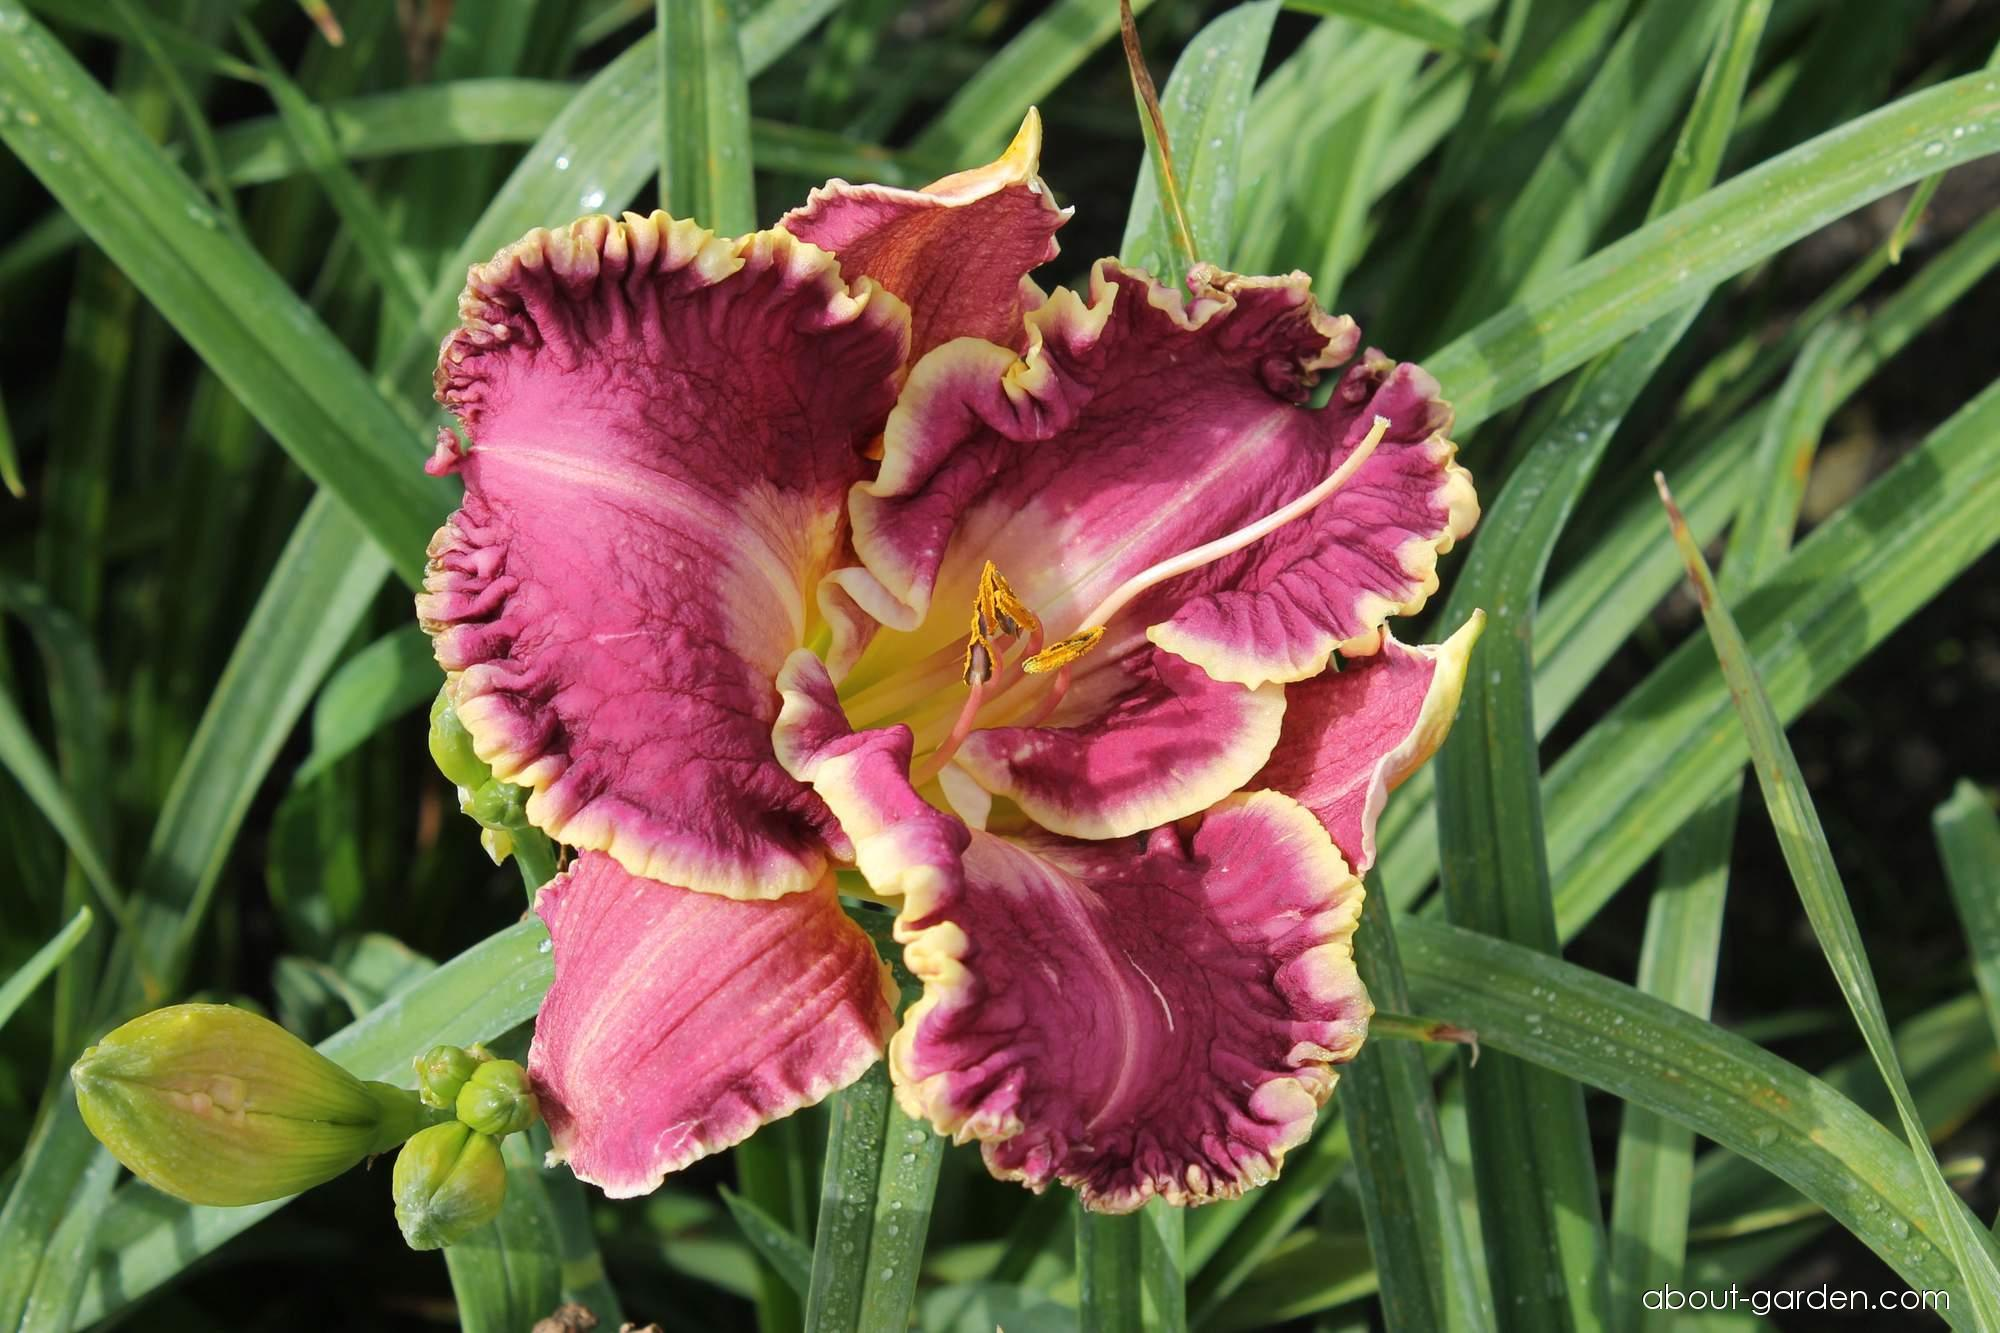 Daylily - Hemerocallis Jennifer Trimmer